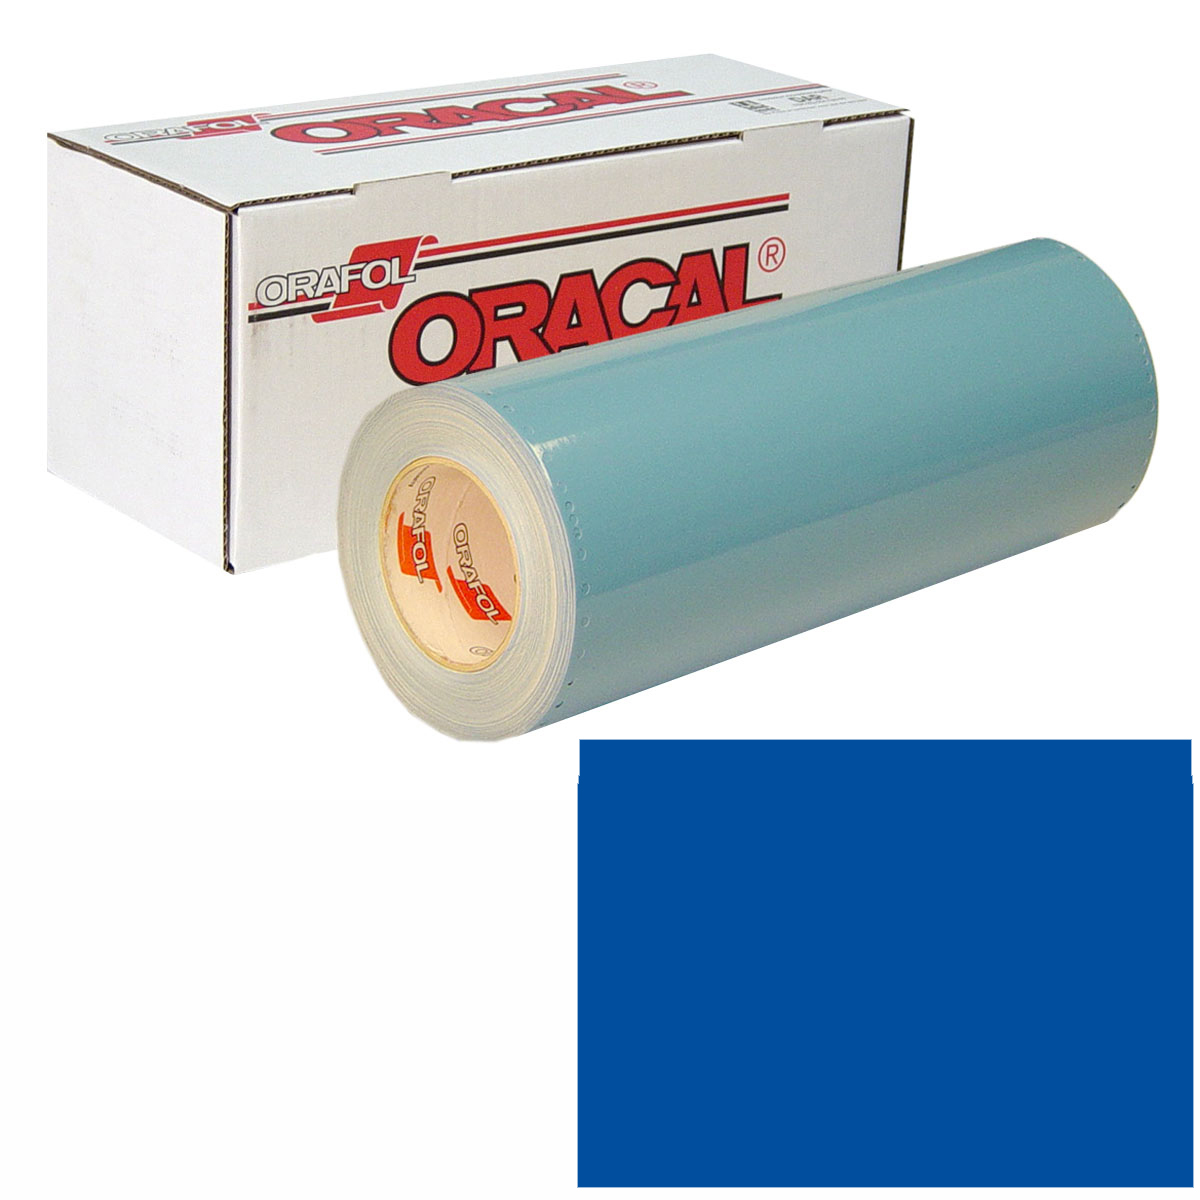 ORACAL 751 15In X 10Yd 057 Traffic Blue